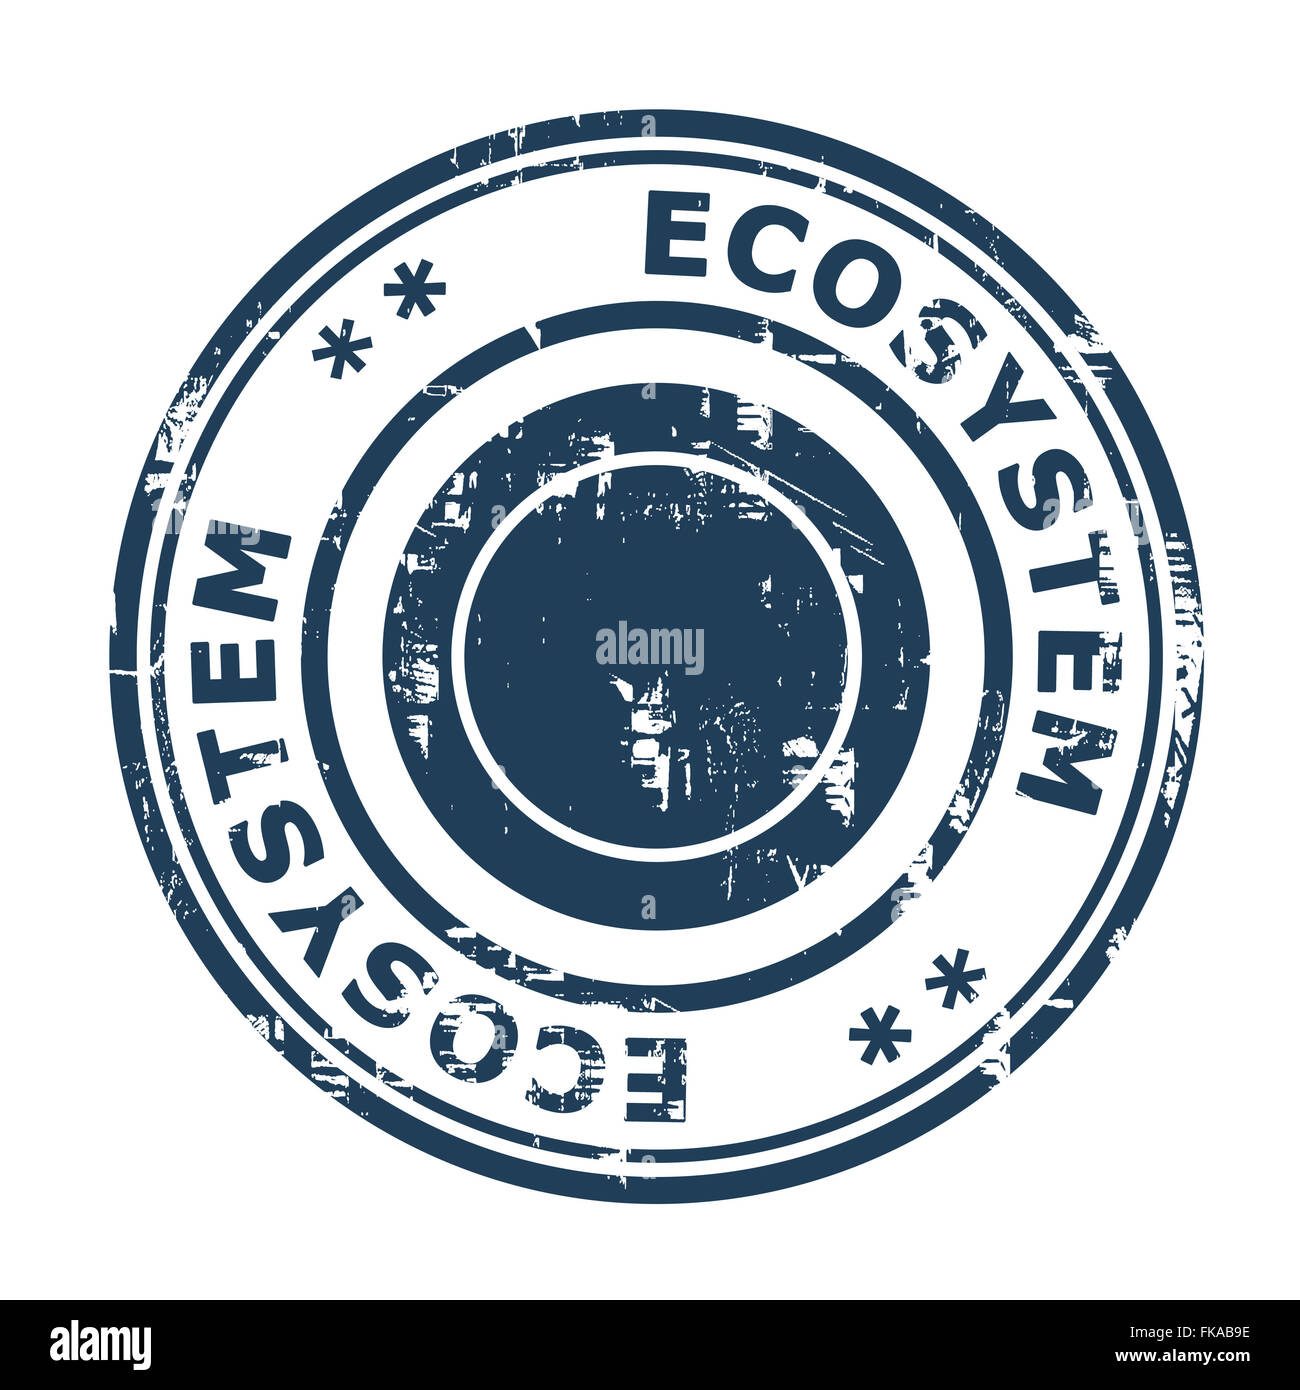 Ecosystem business concept rubber stamp isolated on a white background. - Stock Image